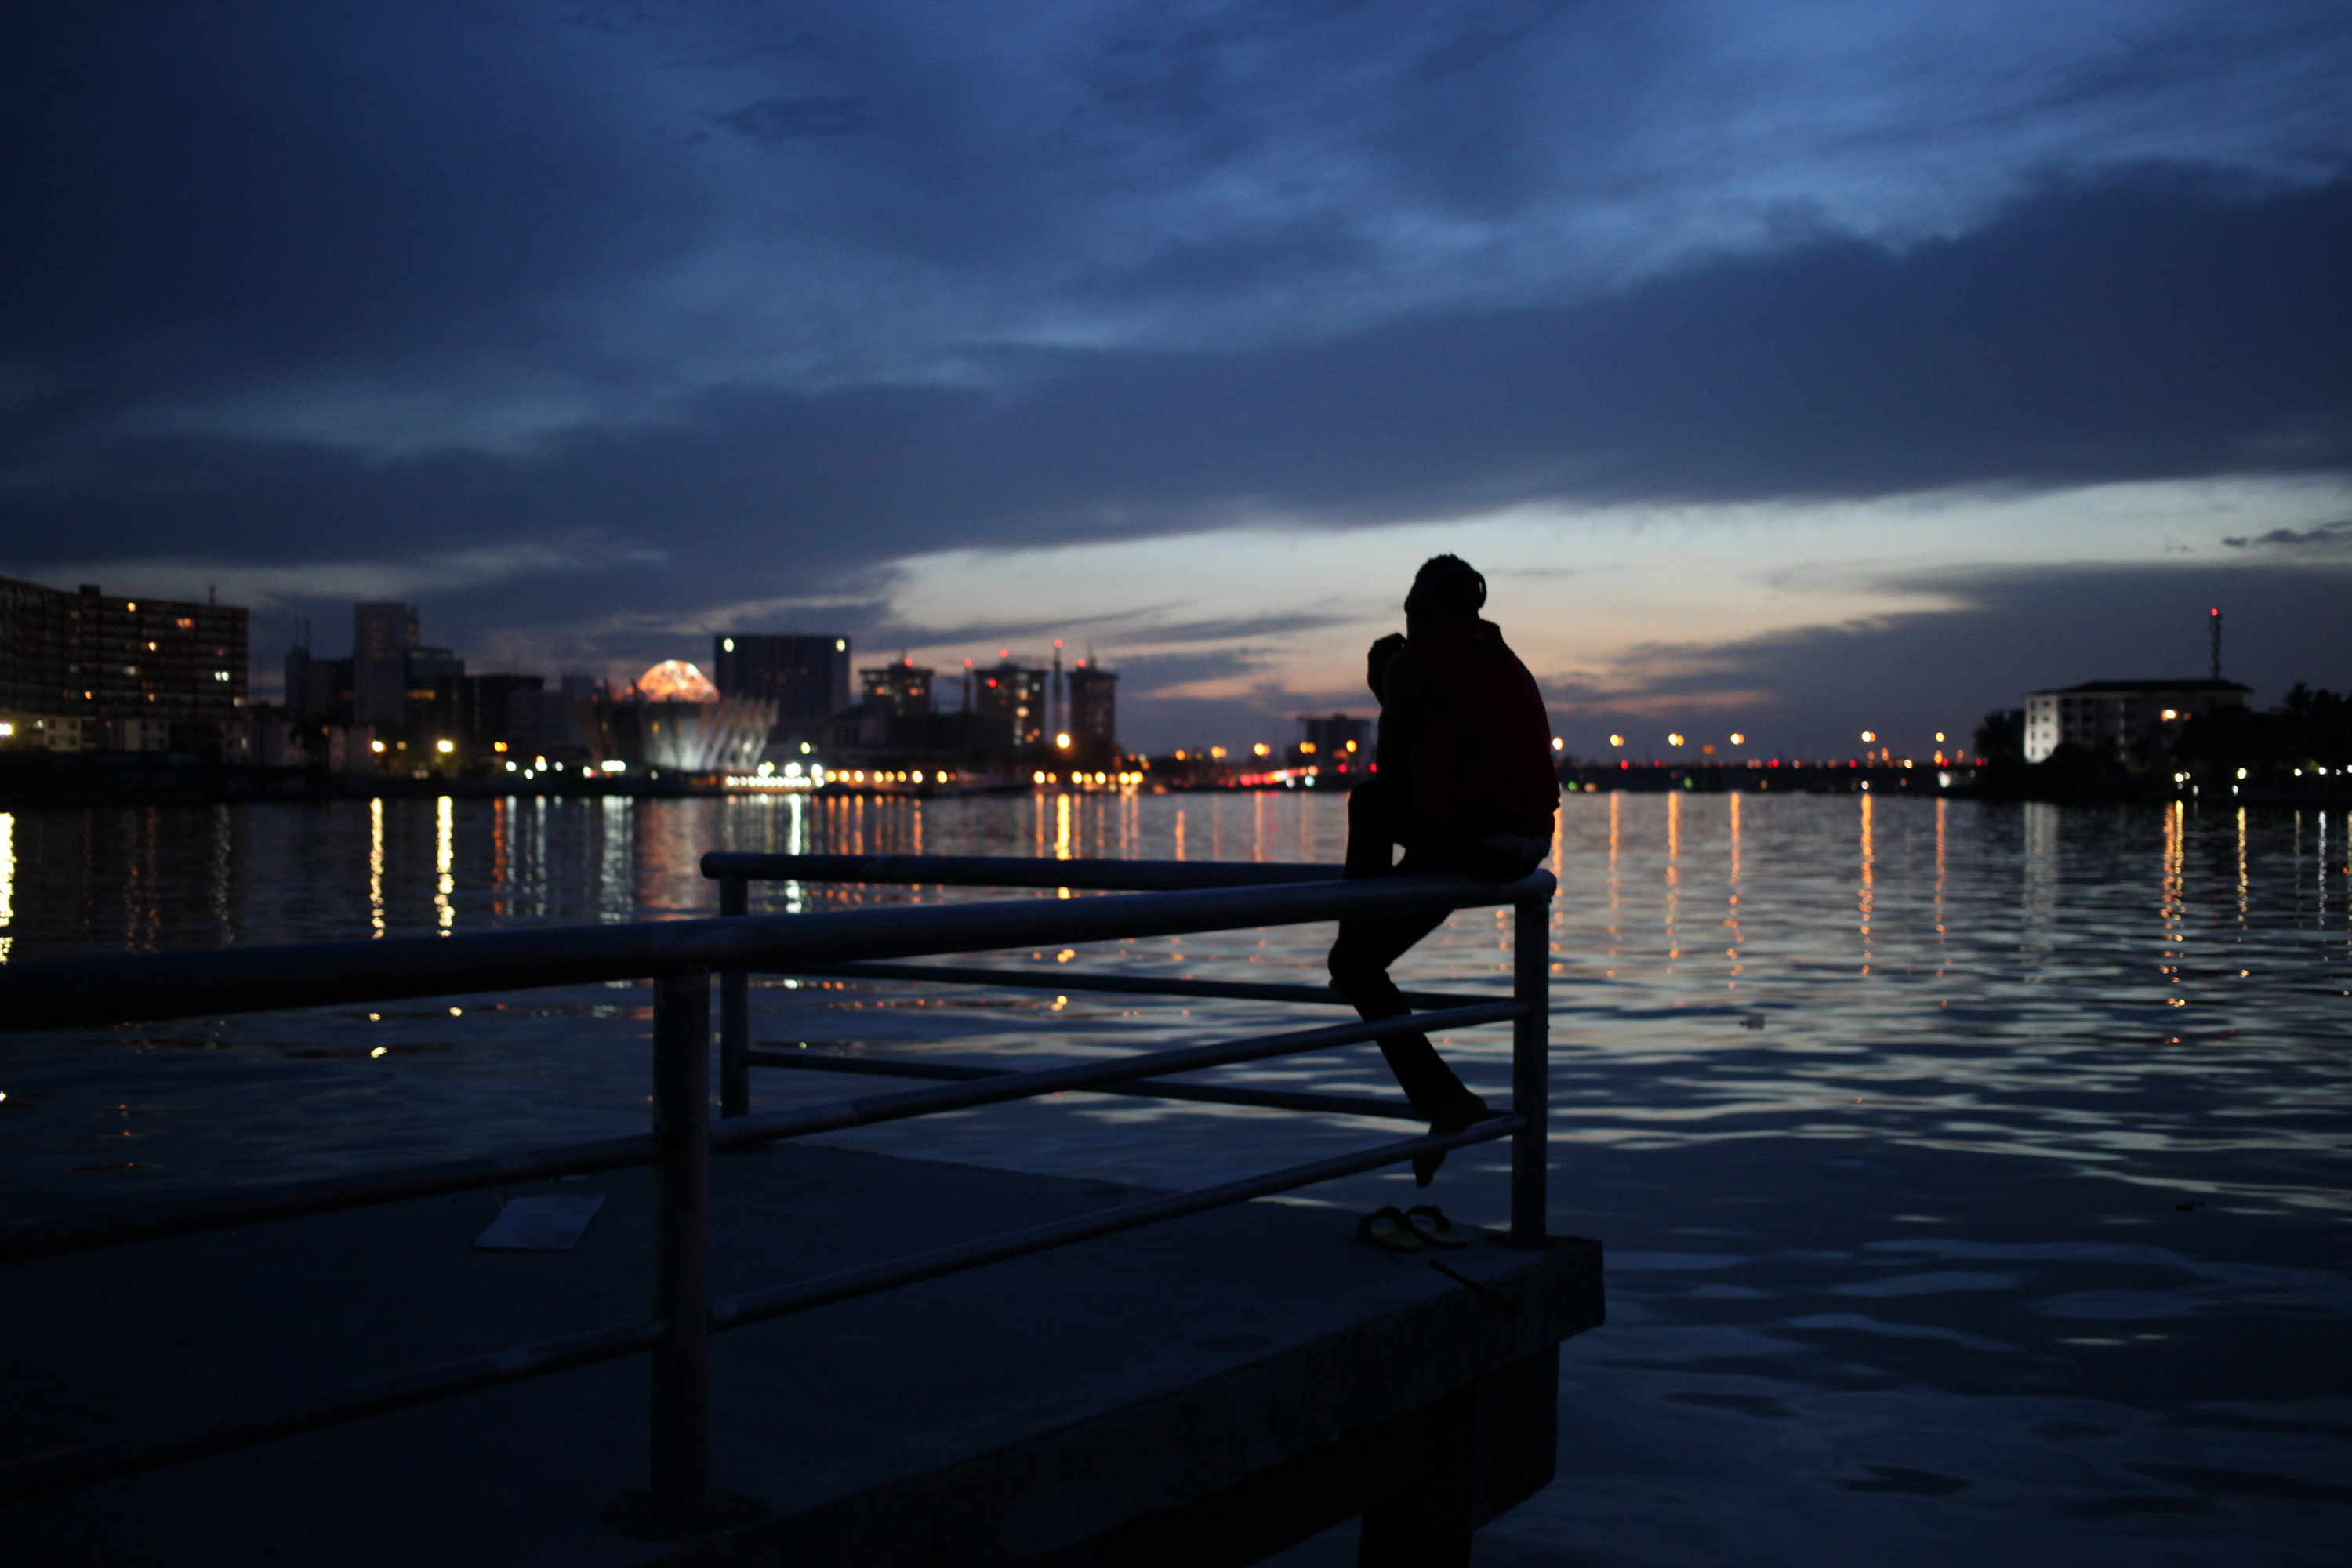 "<div class=""meta image-caption""><div class=""origin-logo origin-image ap""><span>AP</span></div><span class=""caption-text"">A man watches the sunset over the Lagos Lagoon in Lagos, Nigeria. (AP)</span></div>"